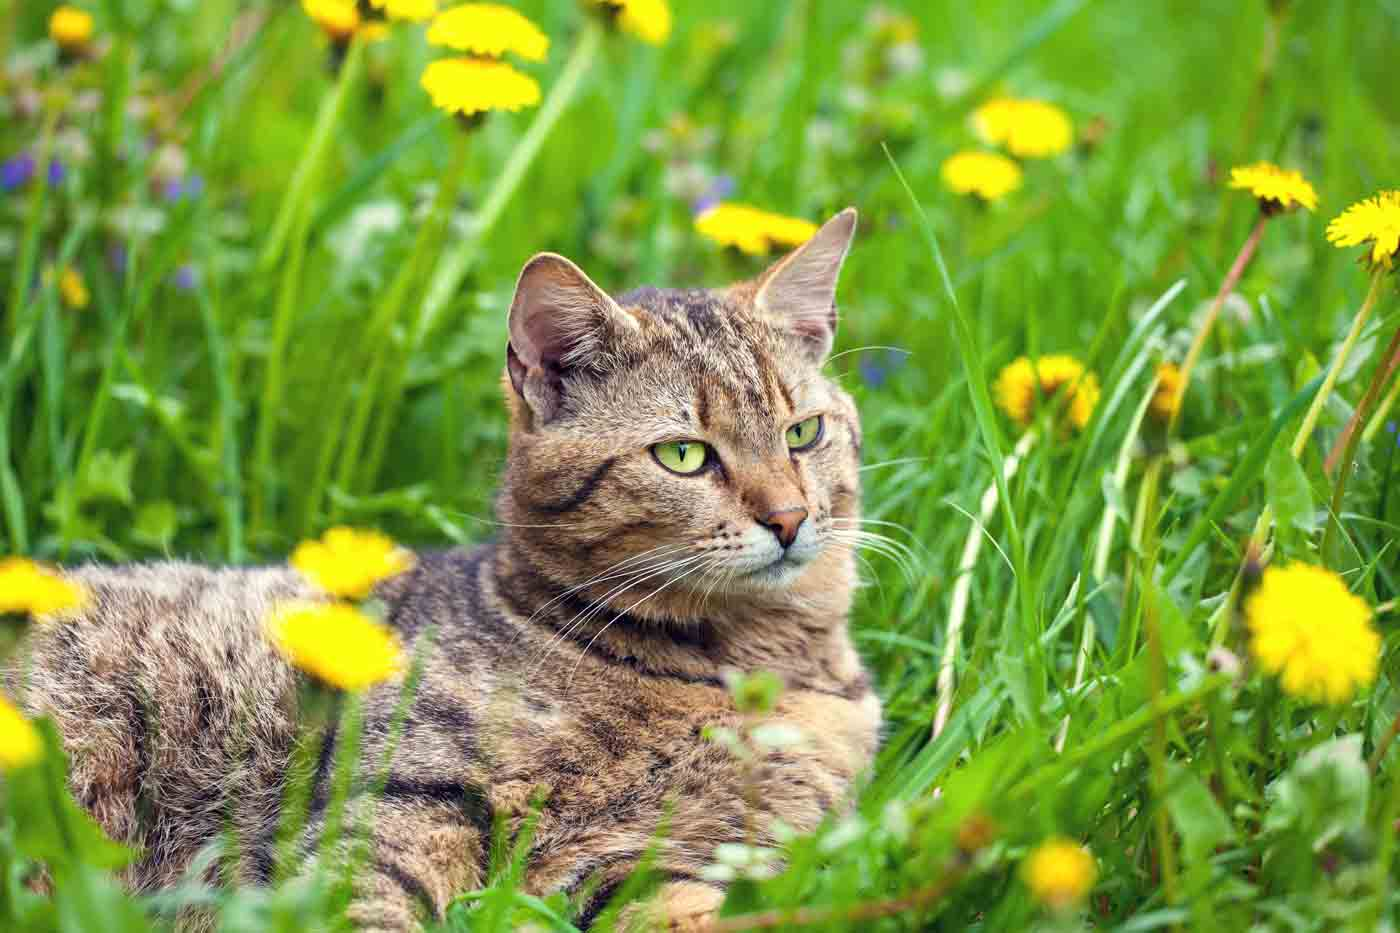 cat with green eyes laying in a field of yellow flowers